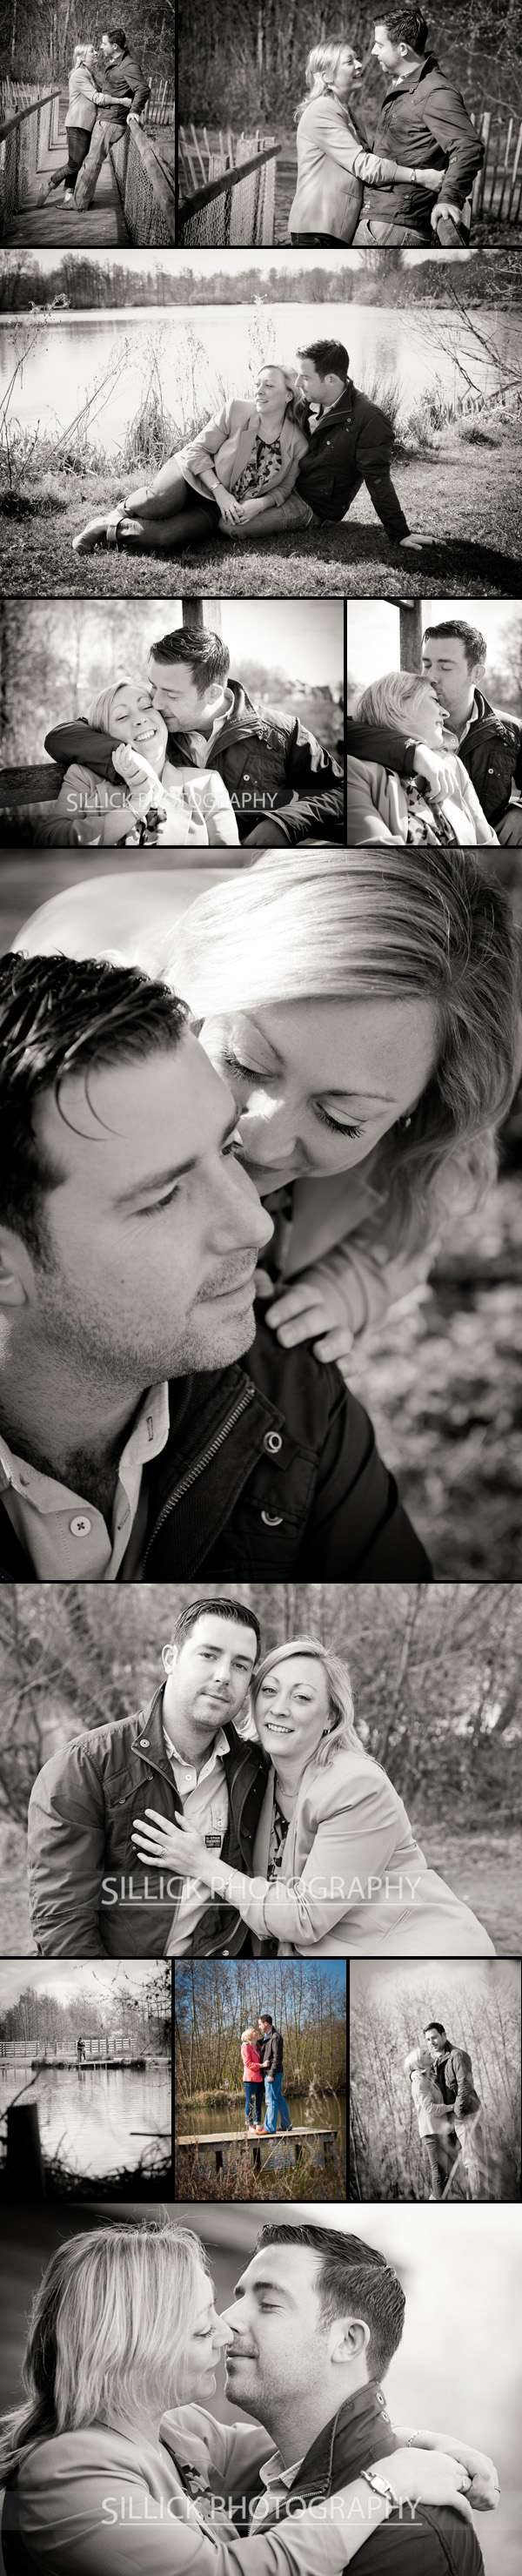 Lakeside Counrty park pre-wedding shoot - Sillick Photography